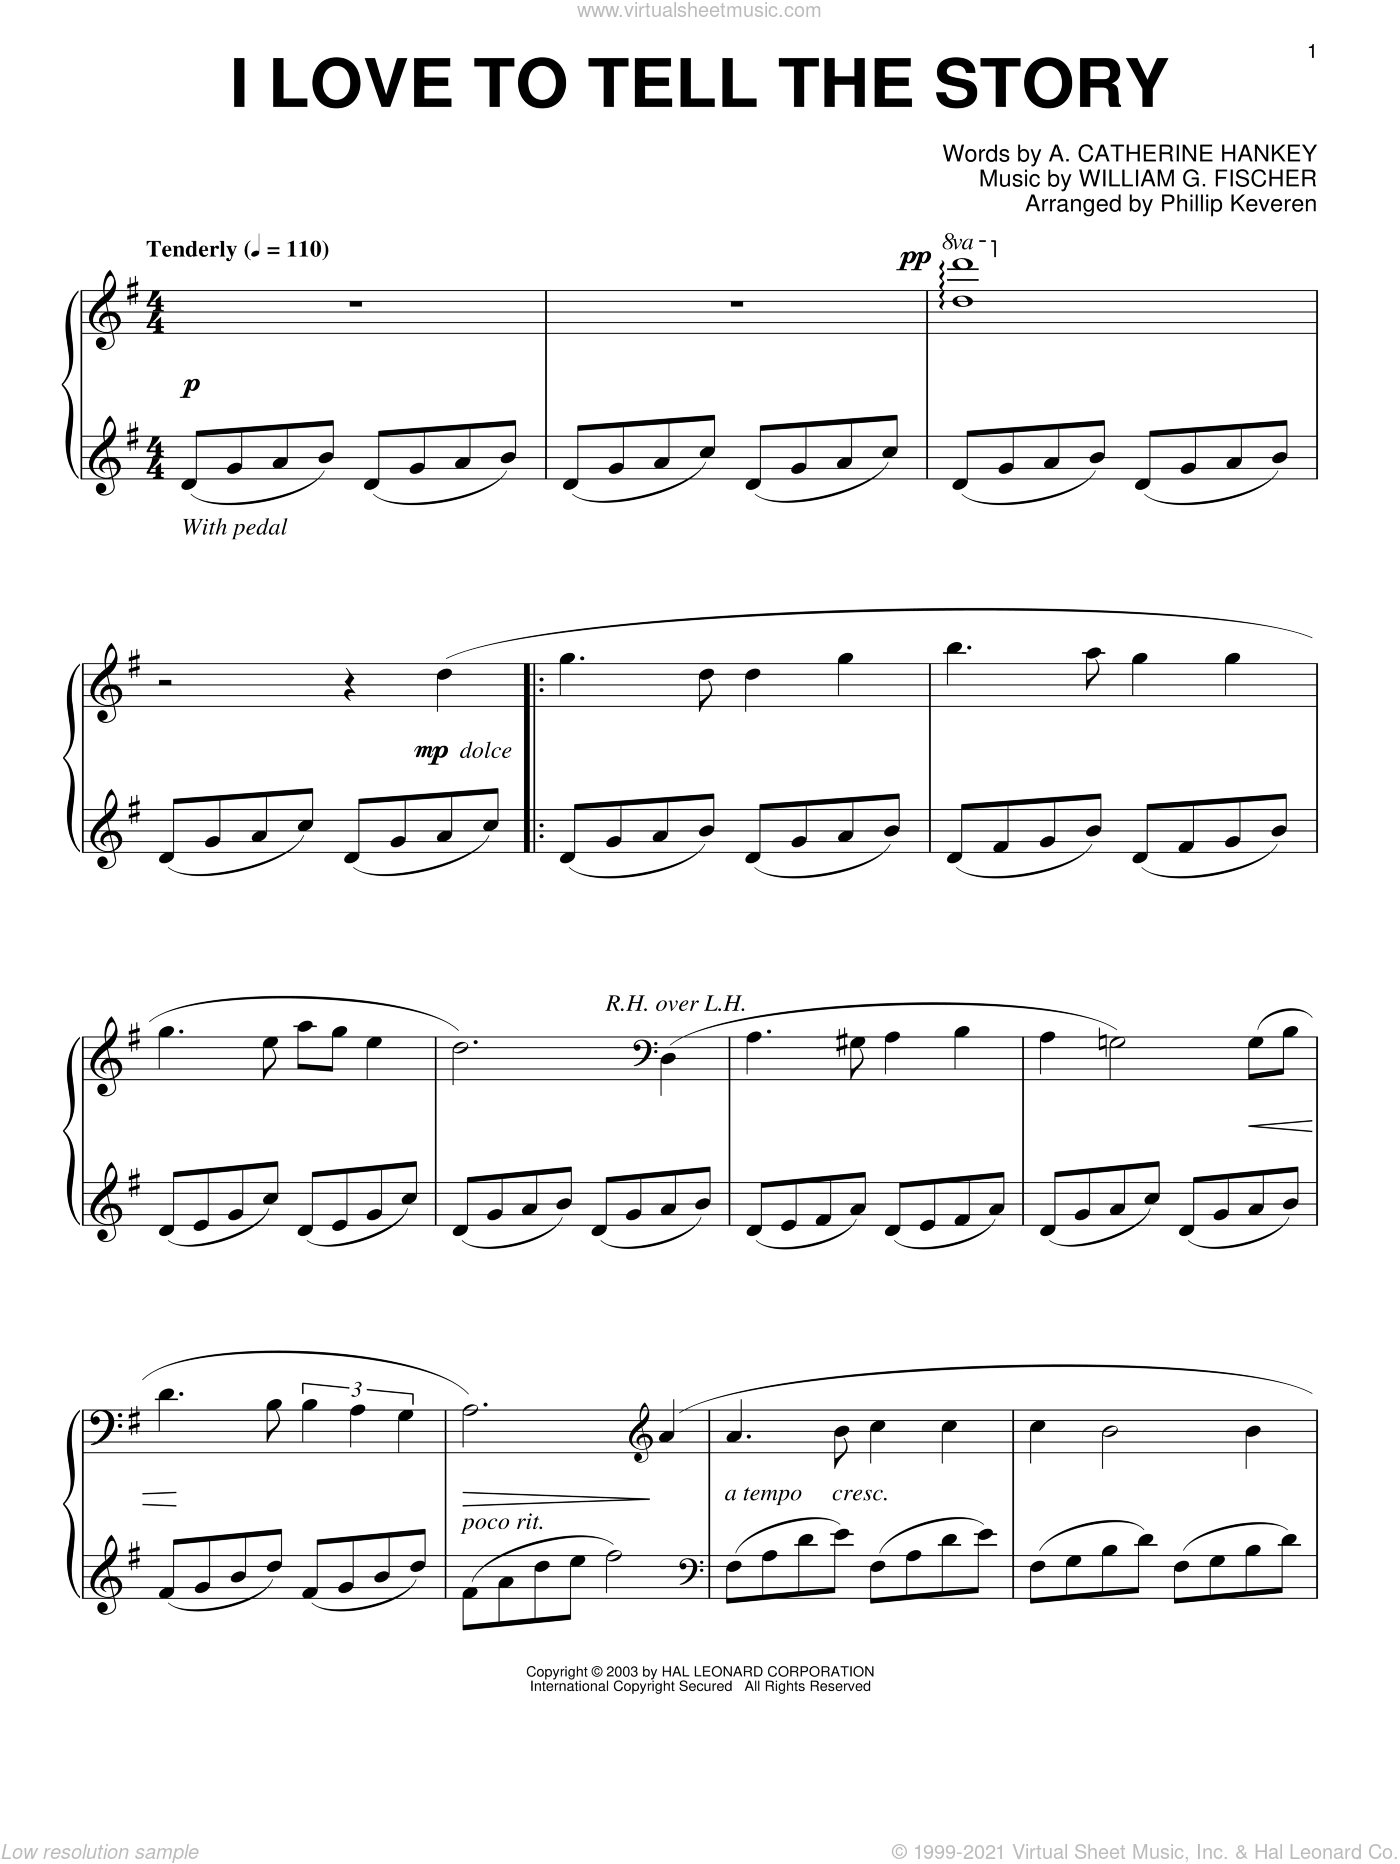 I Love To Tell The Story sheet music for piano solo by A. Catherine Hankey, Phillip Keveren and William G. Fischer, intermediate skill level